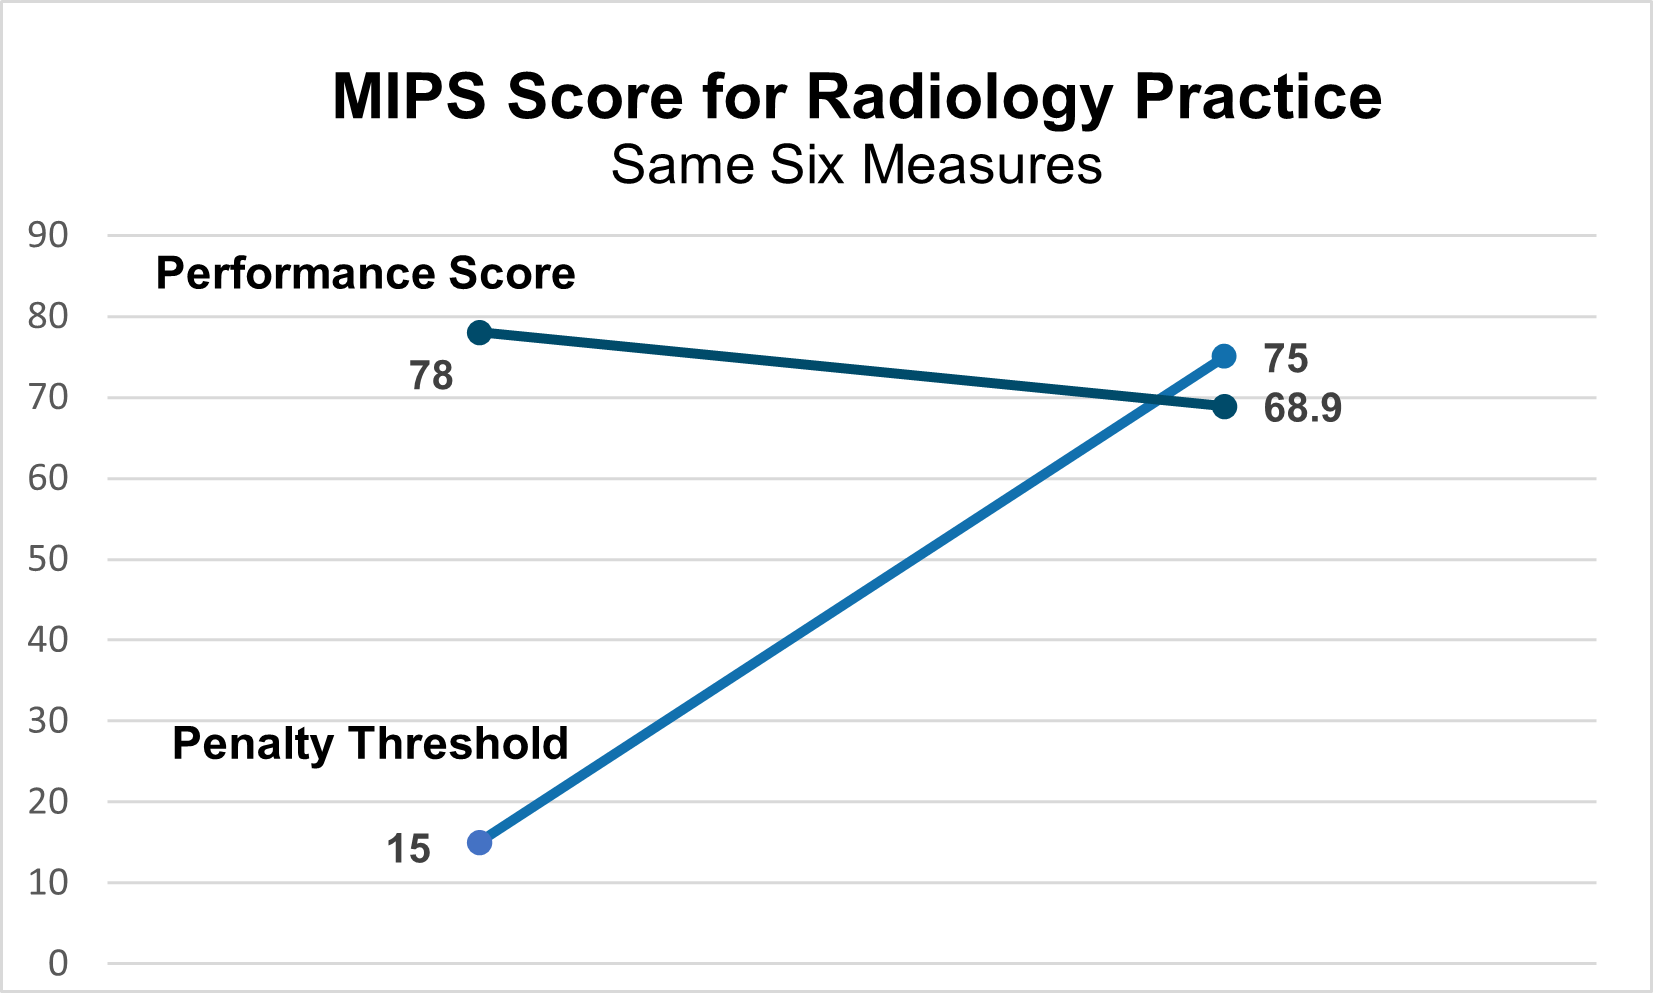 MIPS Score for Radiology Practice